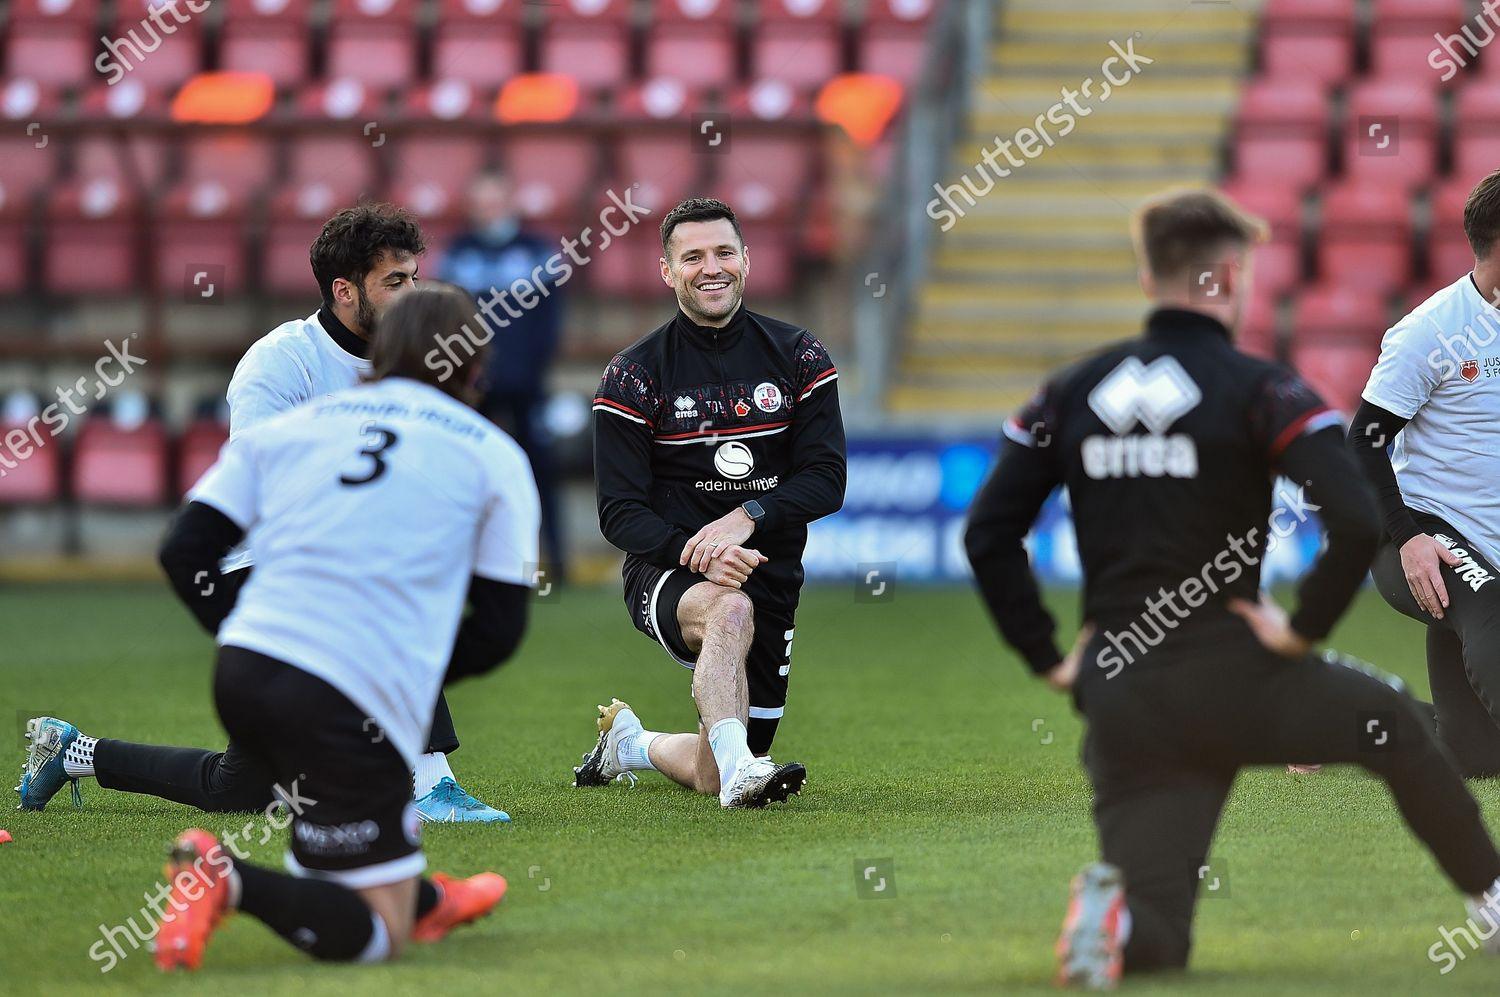 Mark Wright Crawley Fc During Warming During Editorial Stock Photo Stock Image Shutterstock